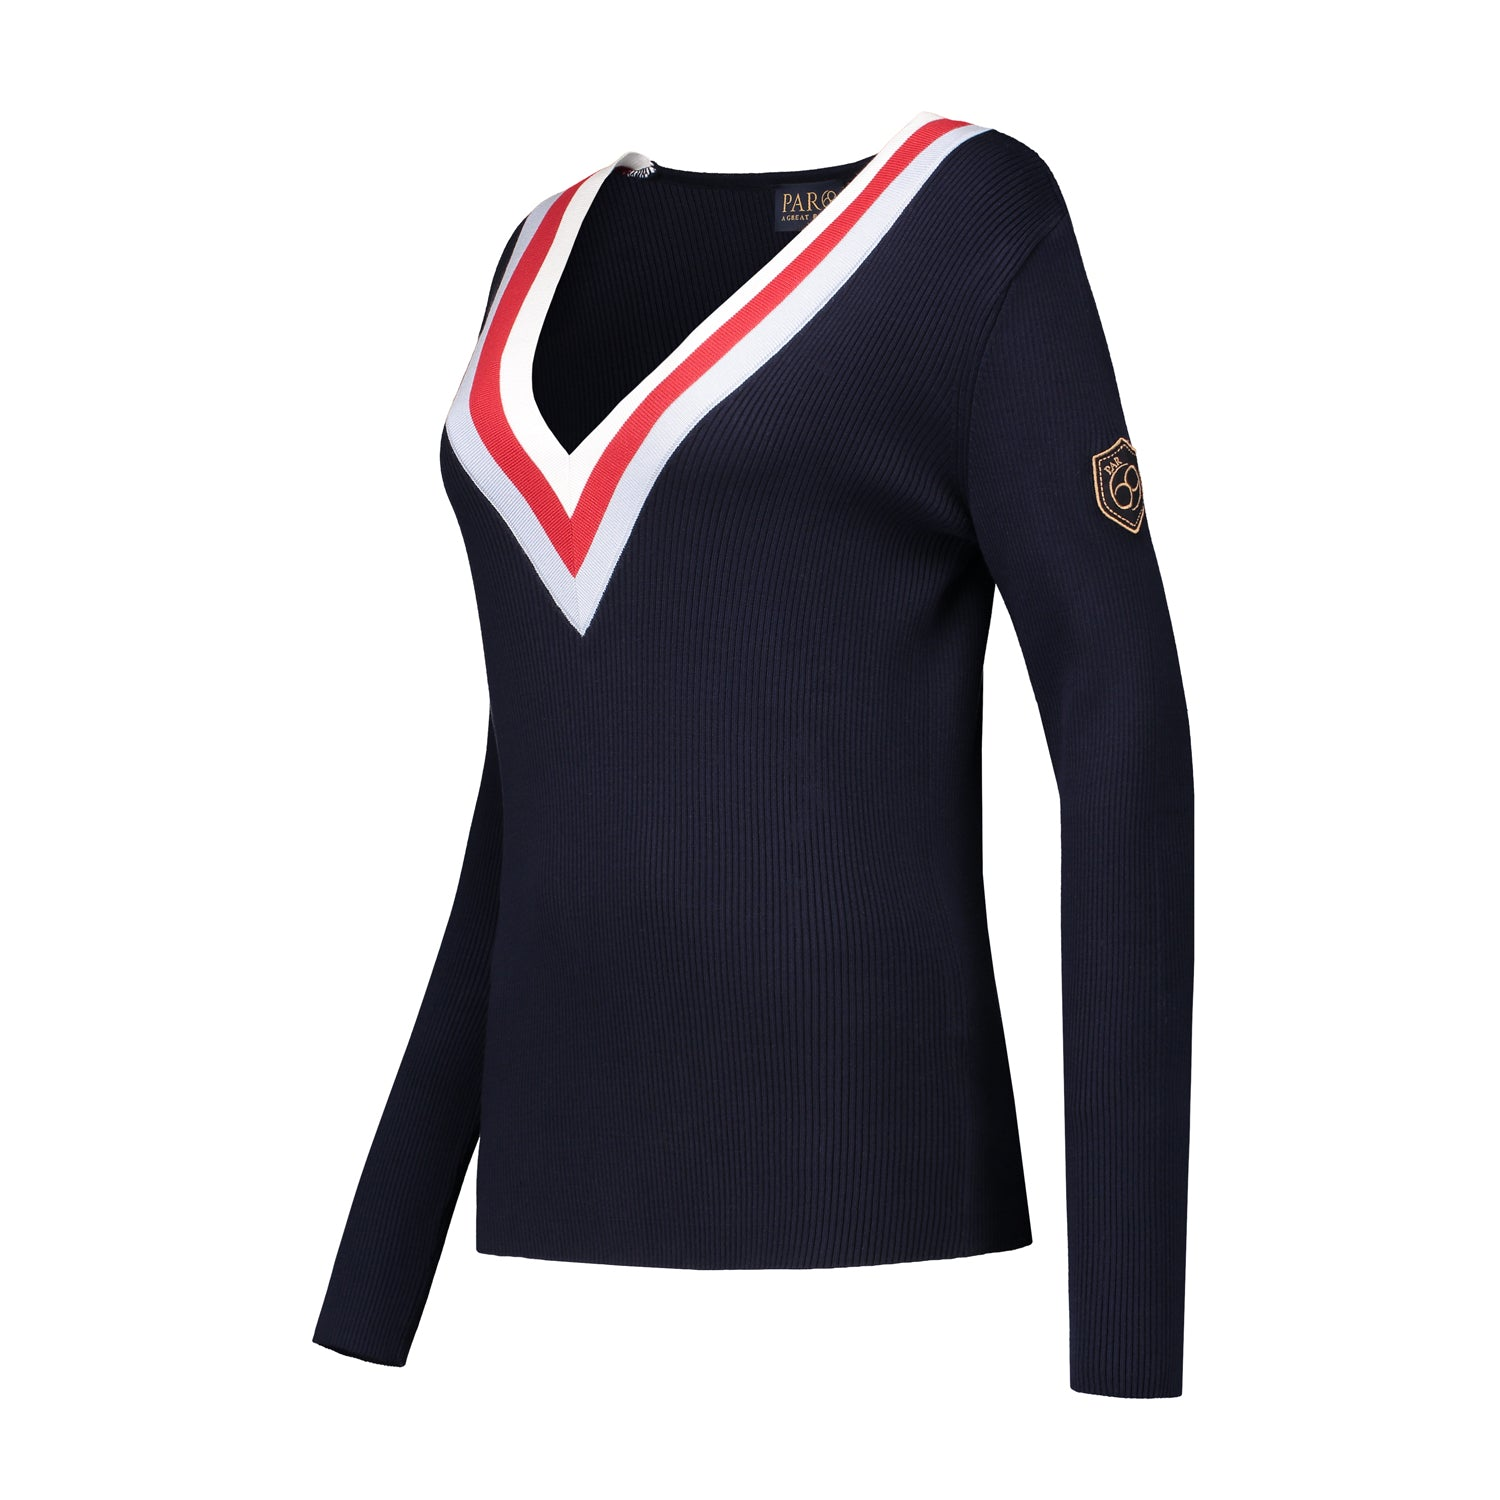 Belle pullover in navy with red